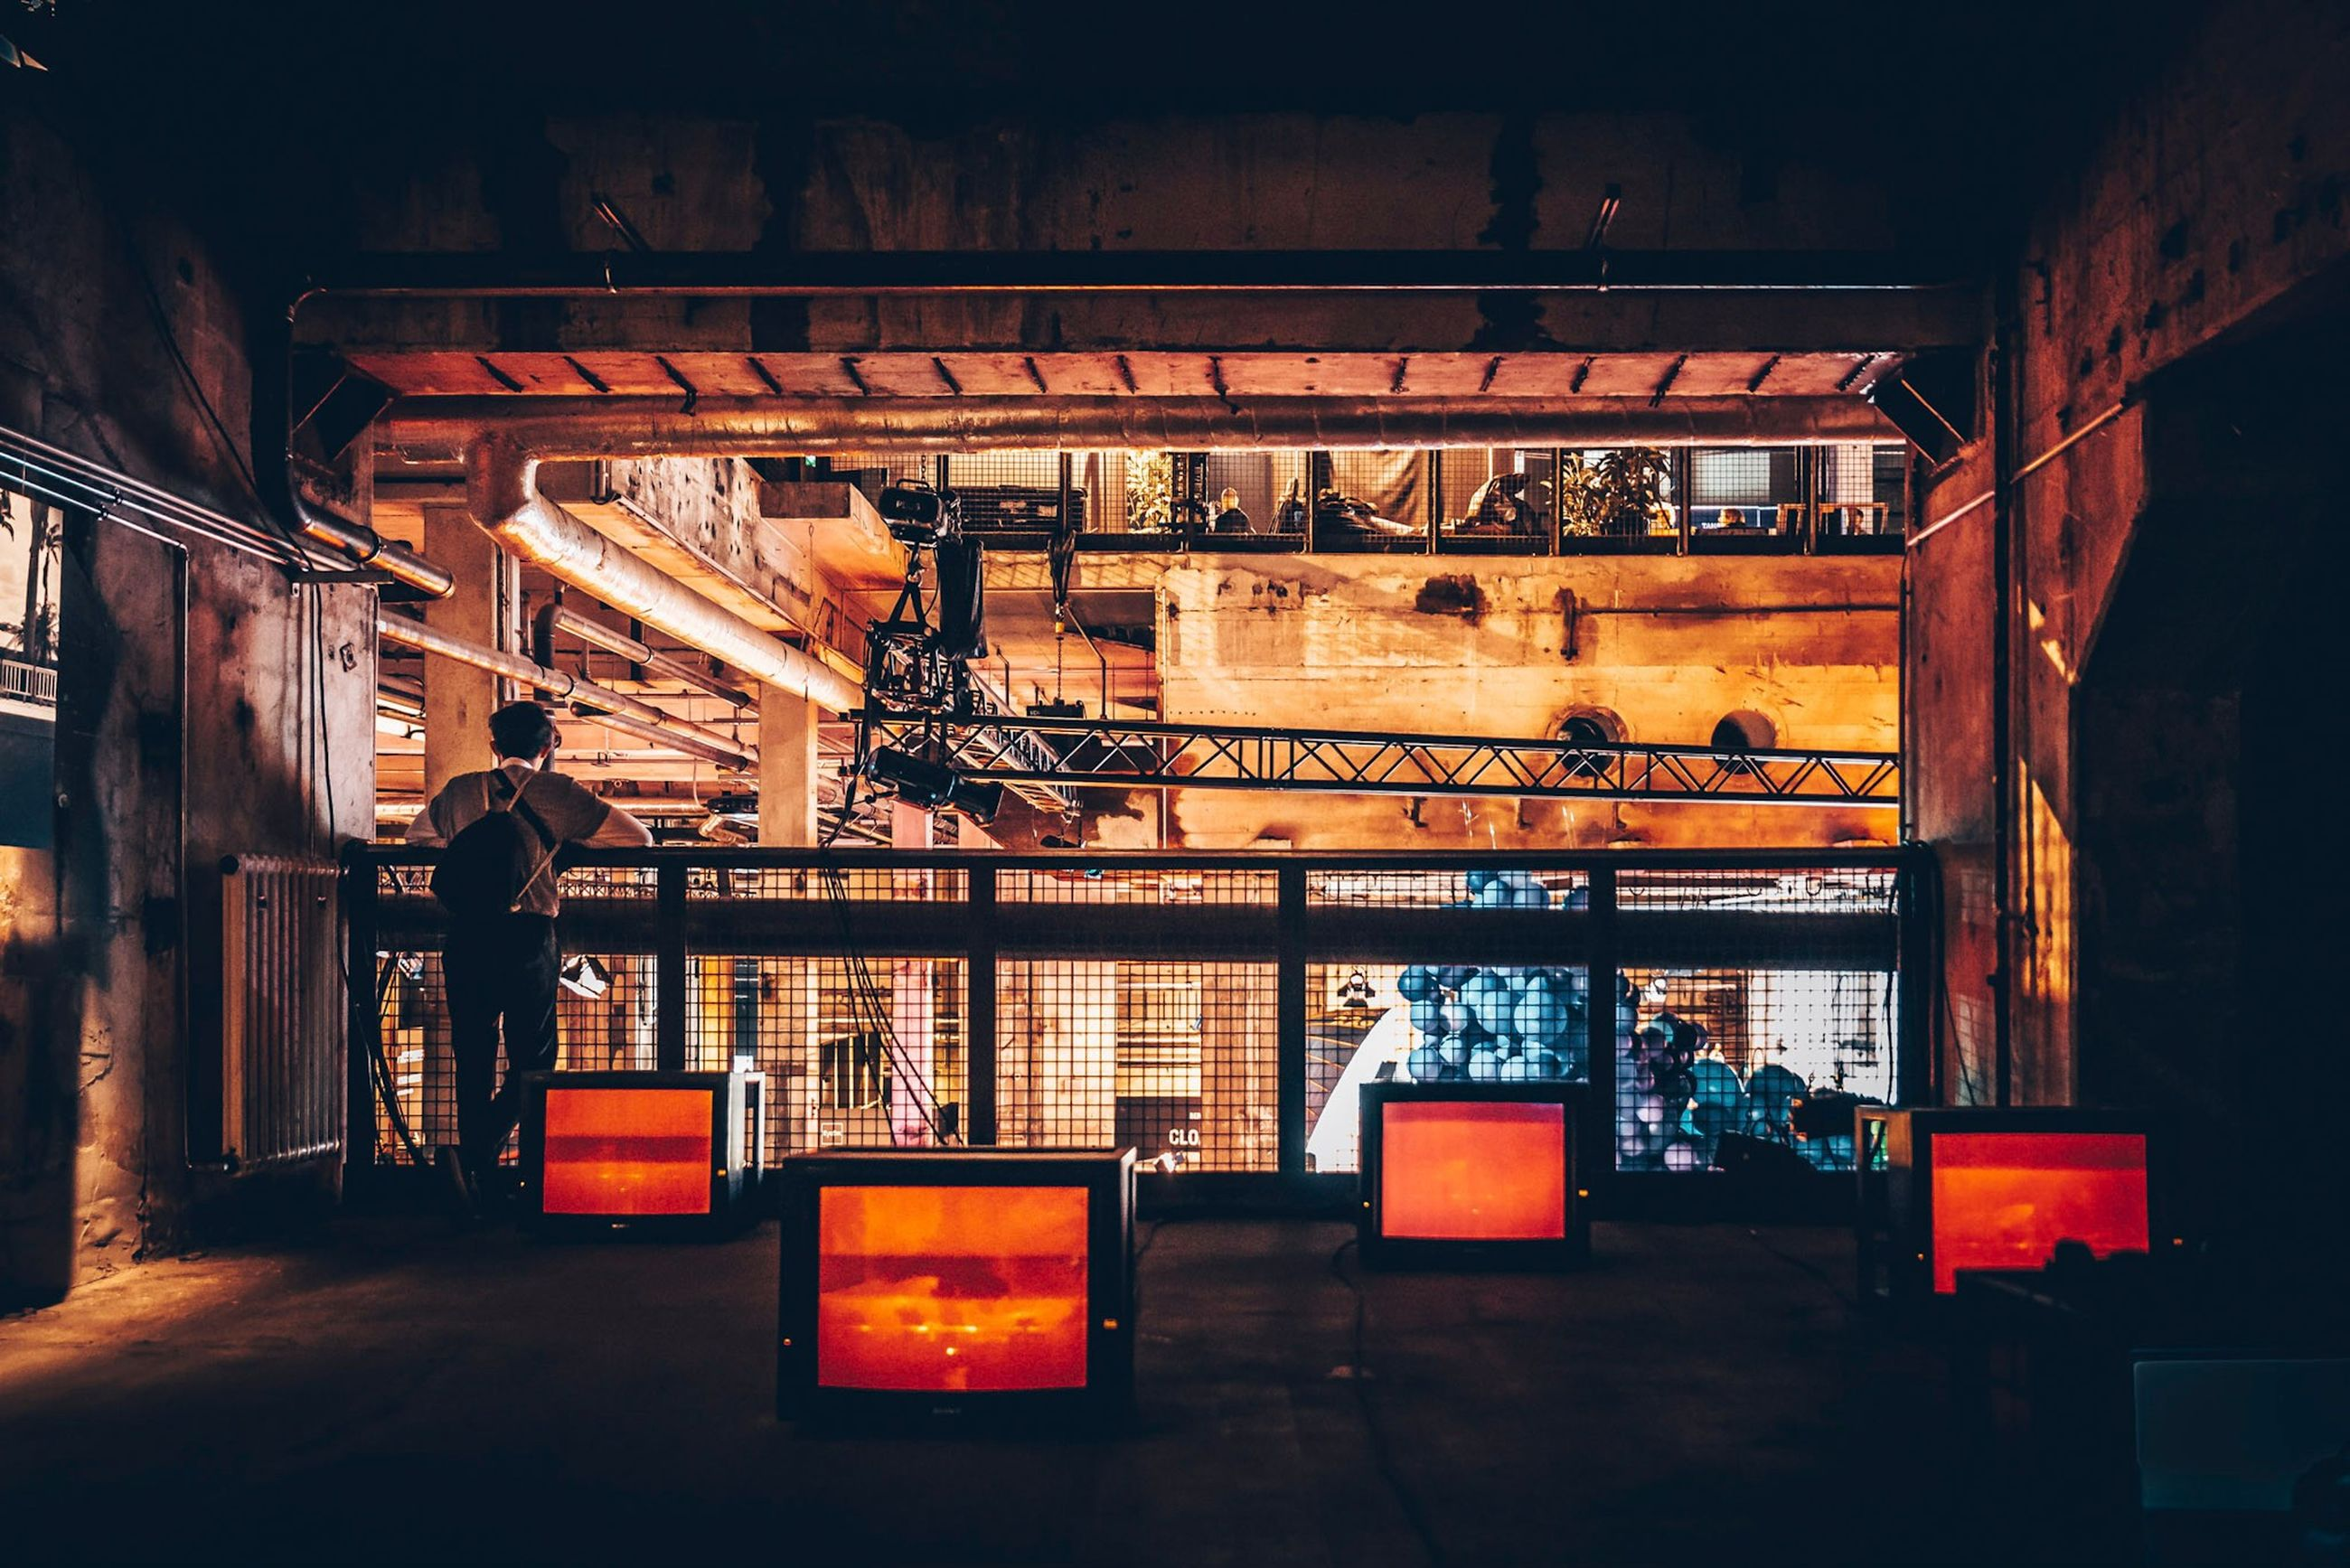 indoors, illuminated, architecture, built structure, no people, orange color, glowing, night, lighting equipment, heat - temperature, blurred motion, wood - material, store, industry, transportation, business, light - natural phenomenon, nature, ceiling